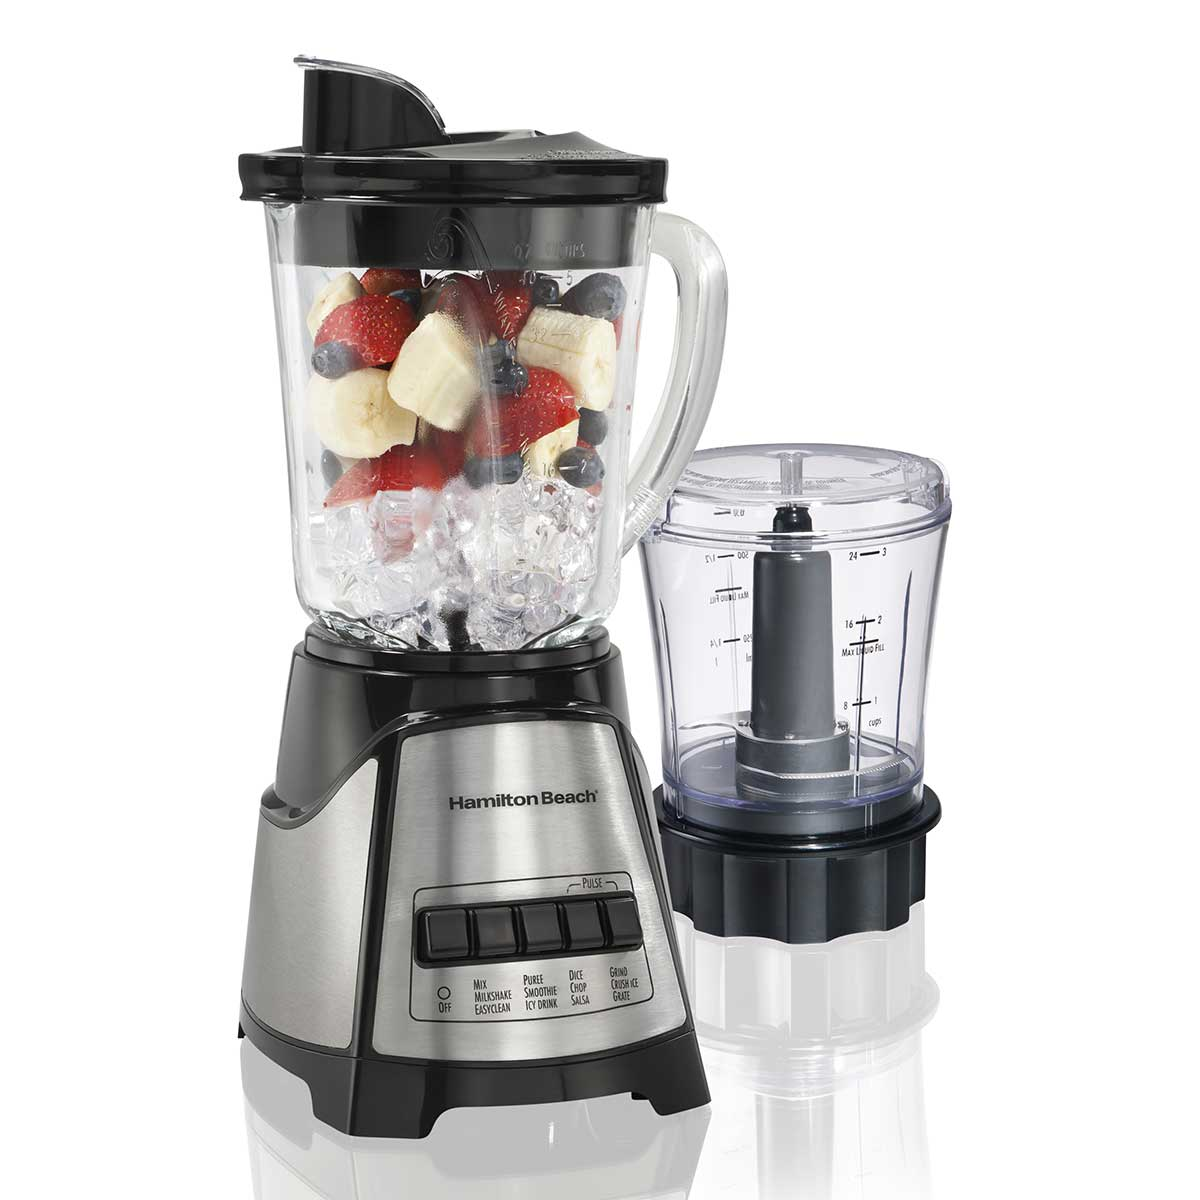 12 Function Blender & Chopper with Mess-free 40oz Glass Jar, 700W Black & Stainless (58149)